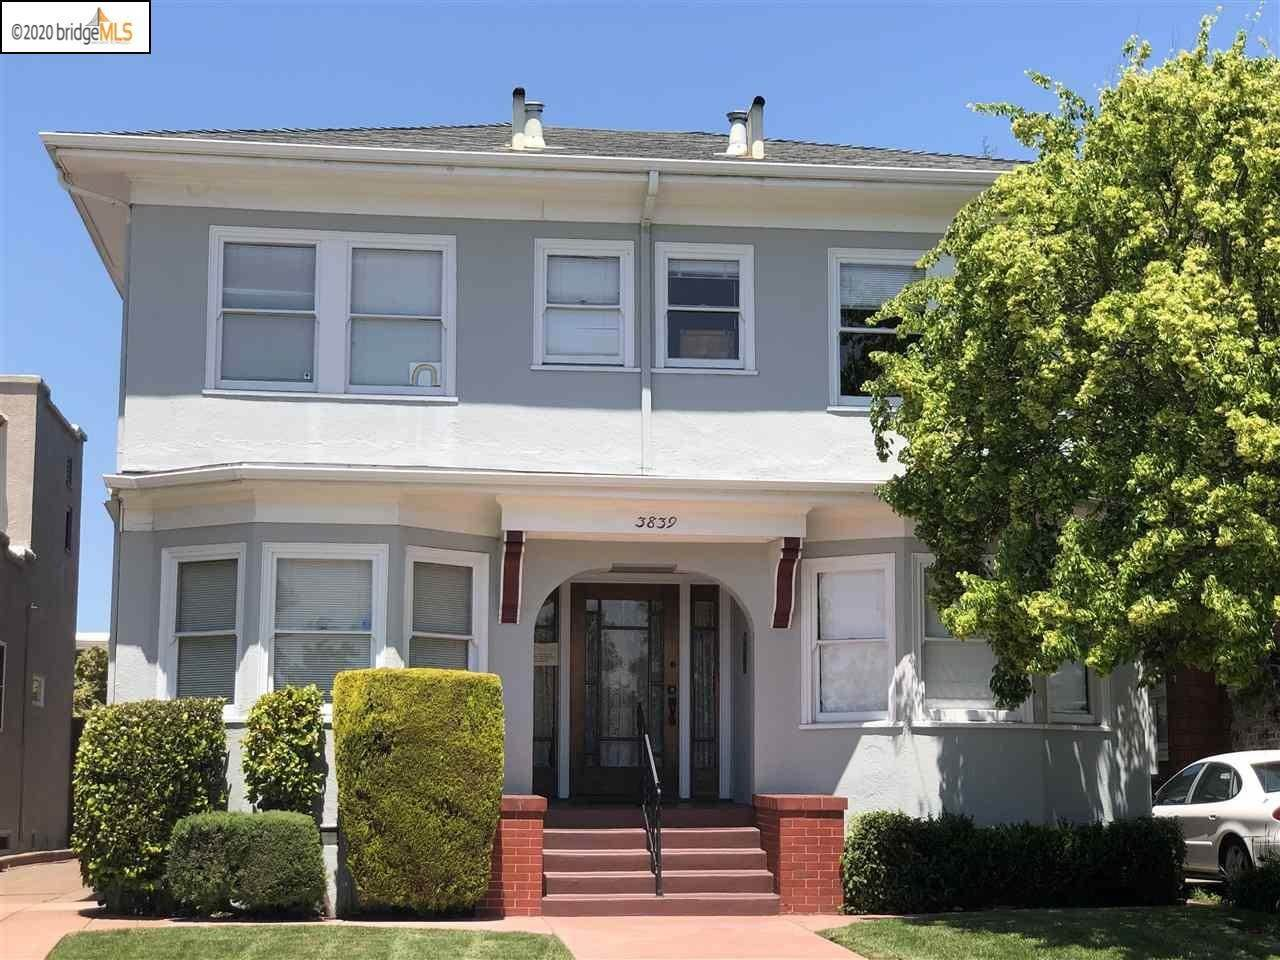 Multi-Family Homes for Sale at 3839 Park Oakland, California 94602 United States